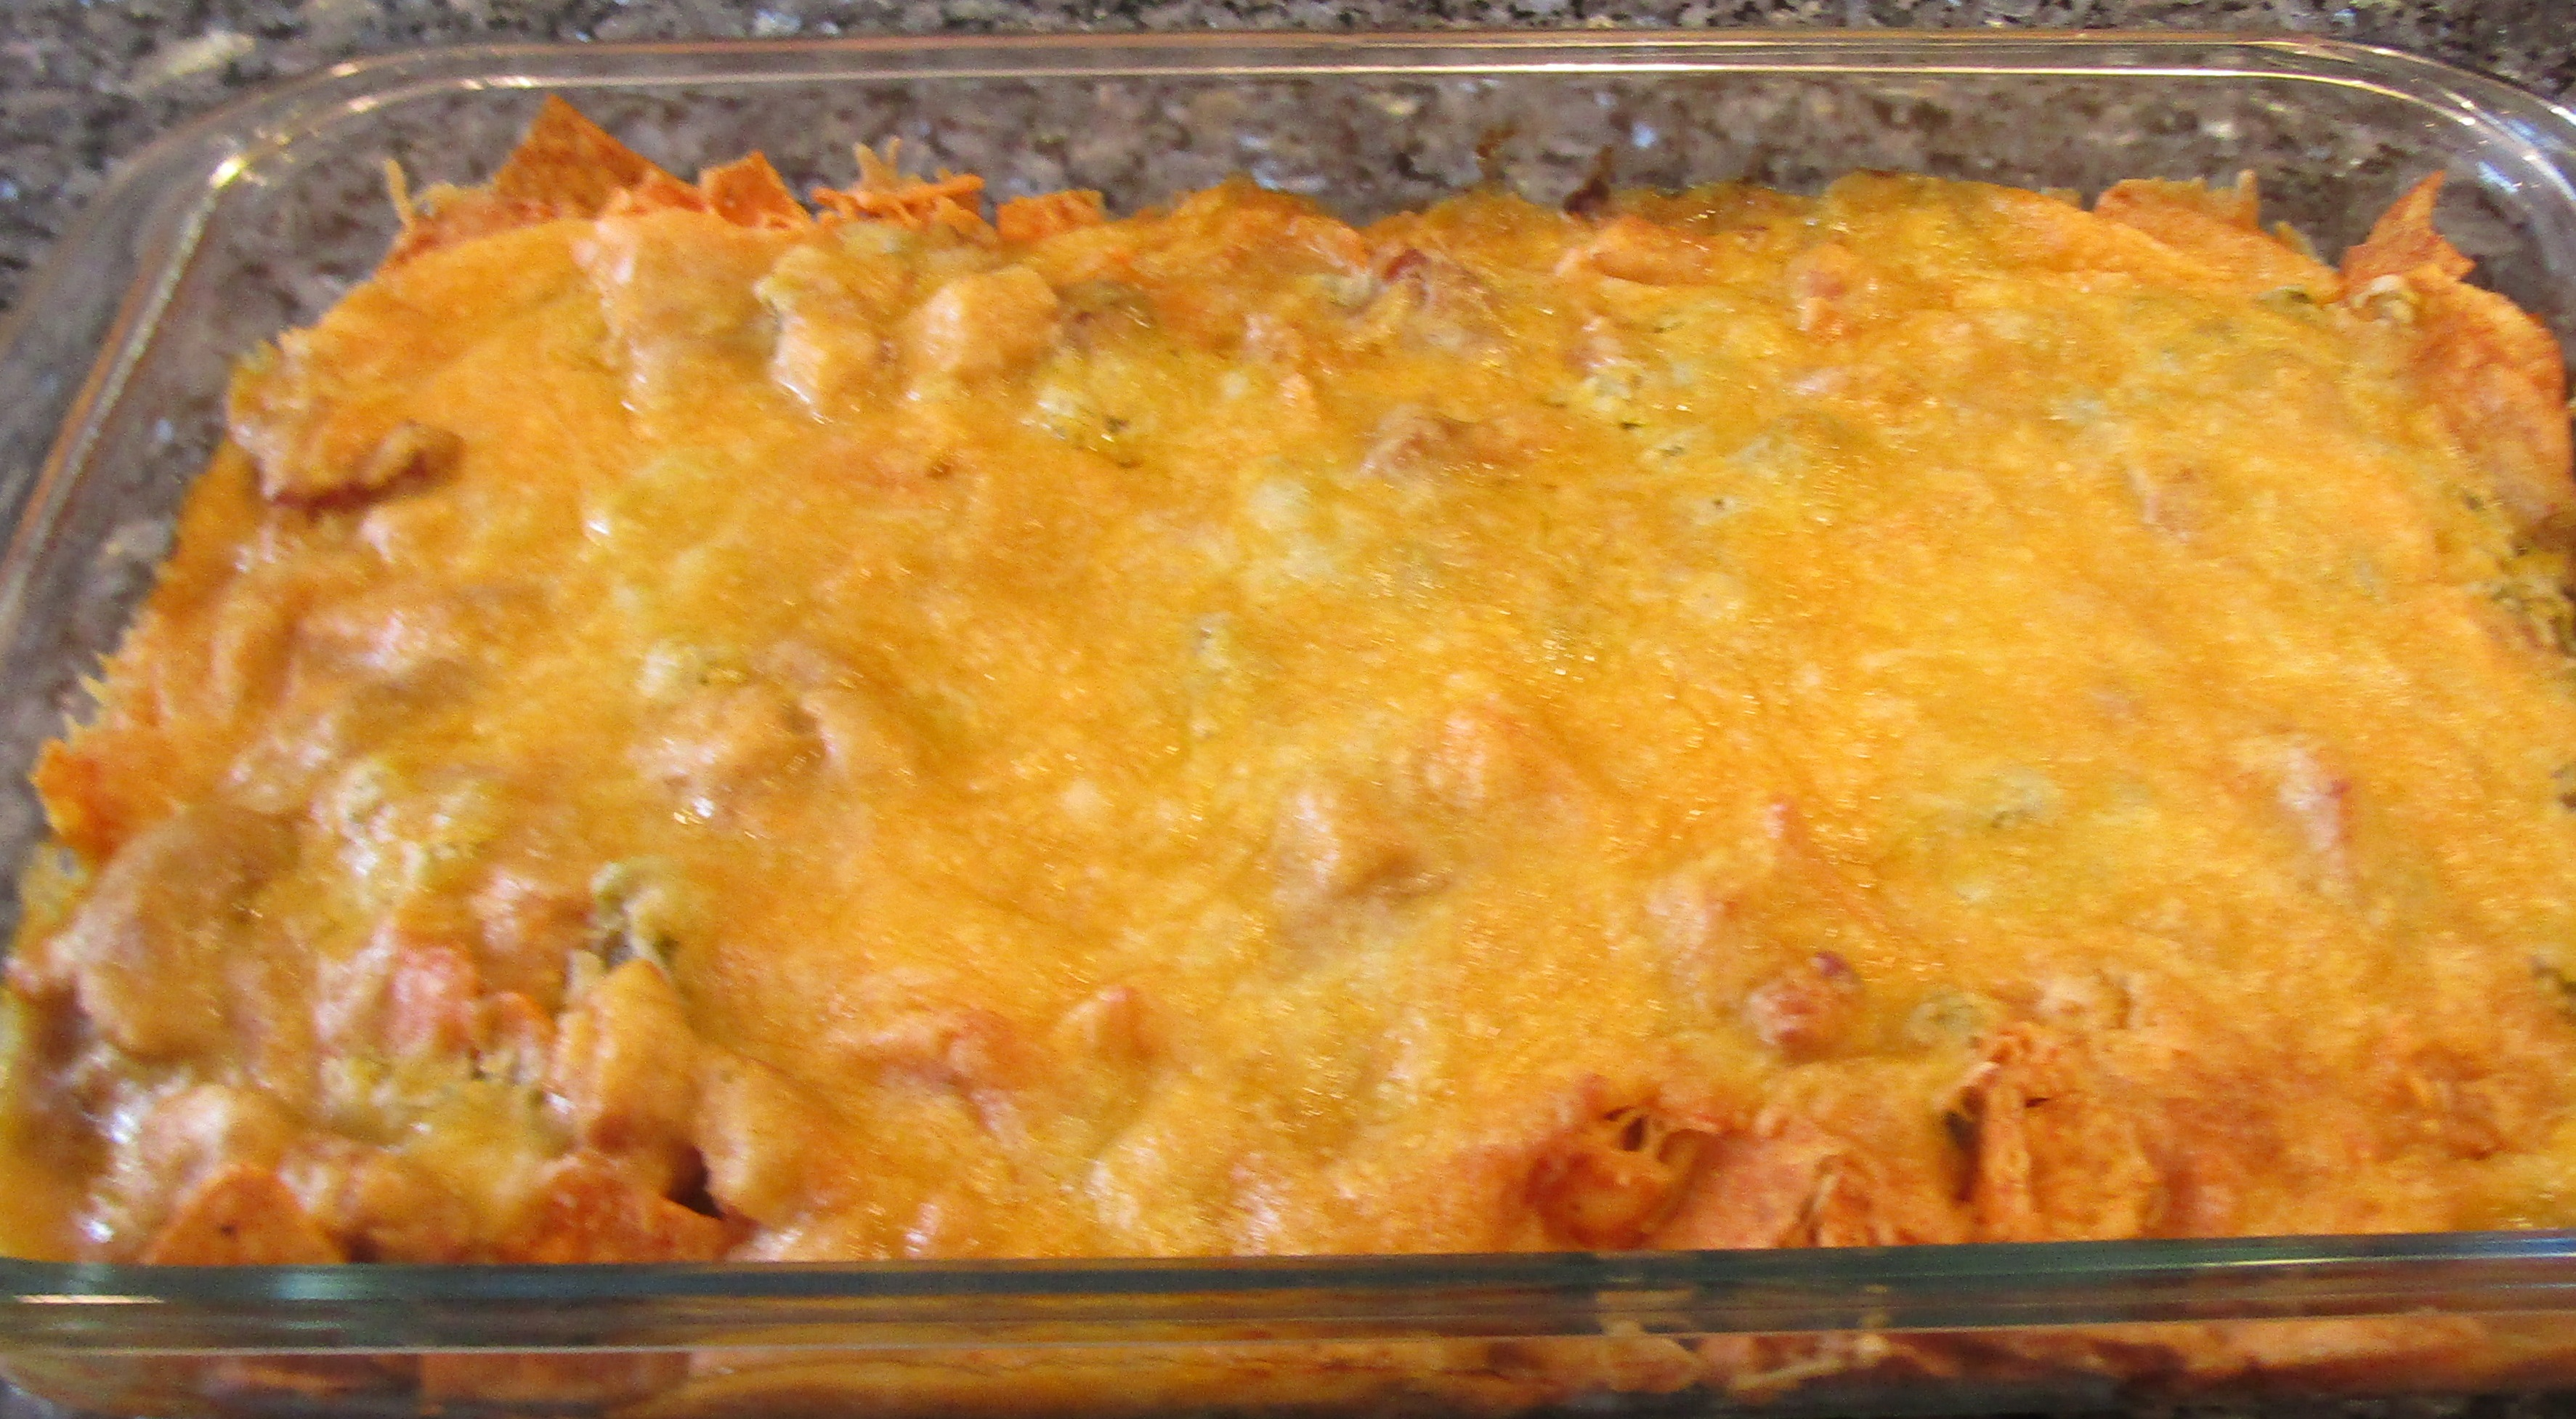 Green Chile Enchilada Bake Recipe